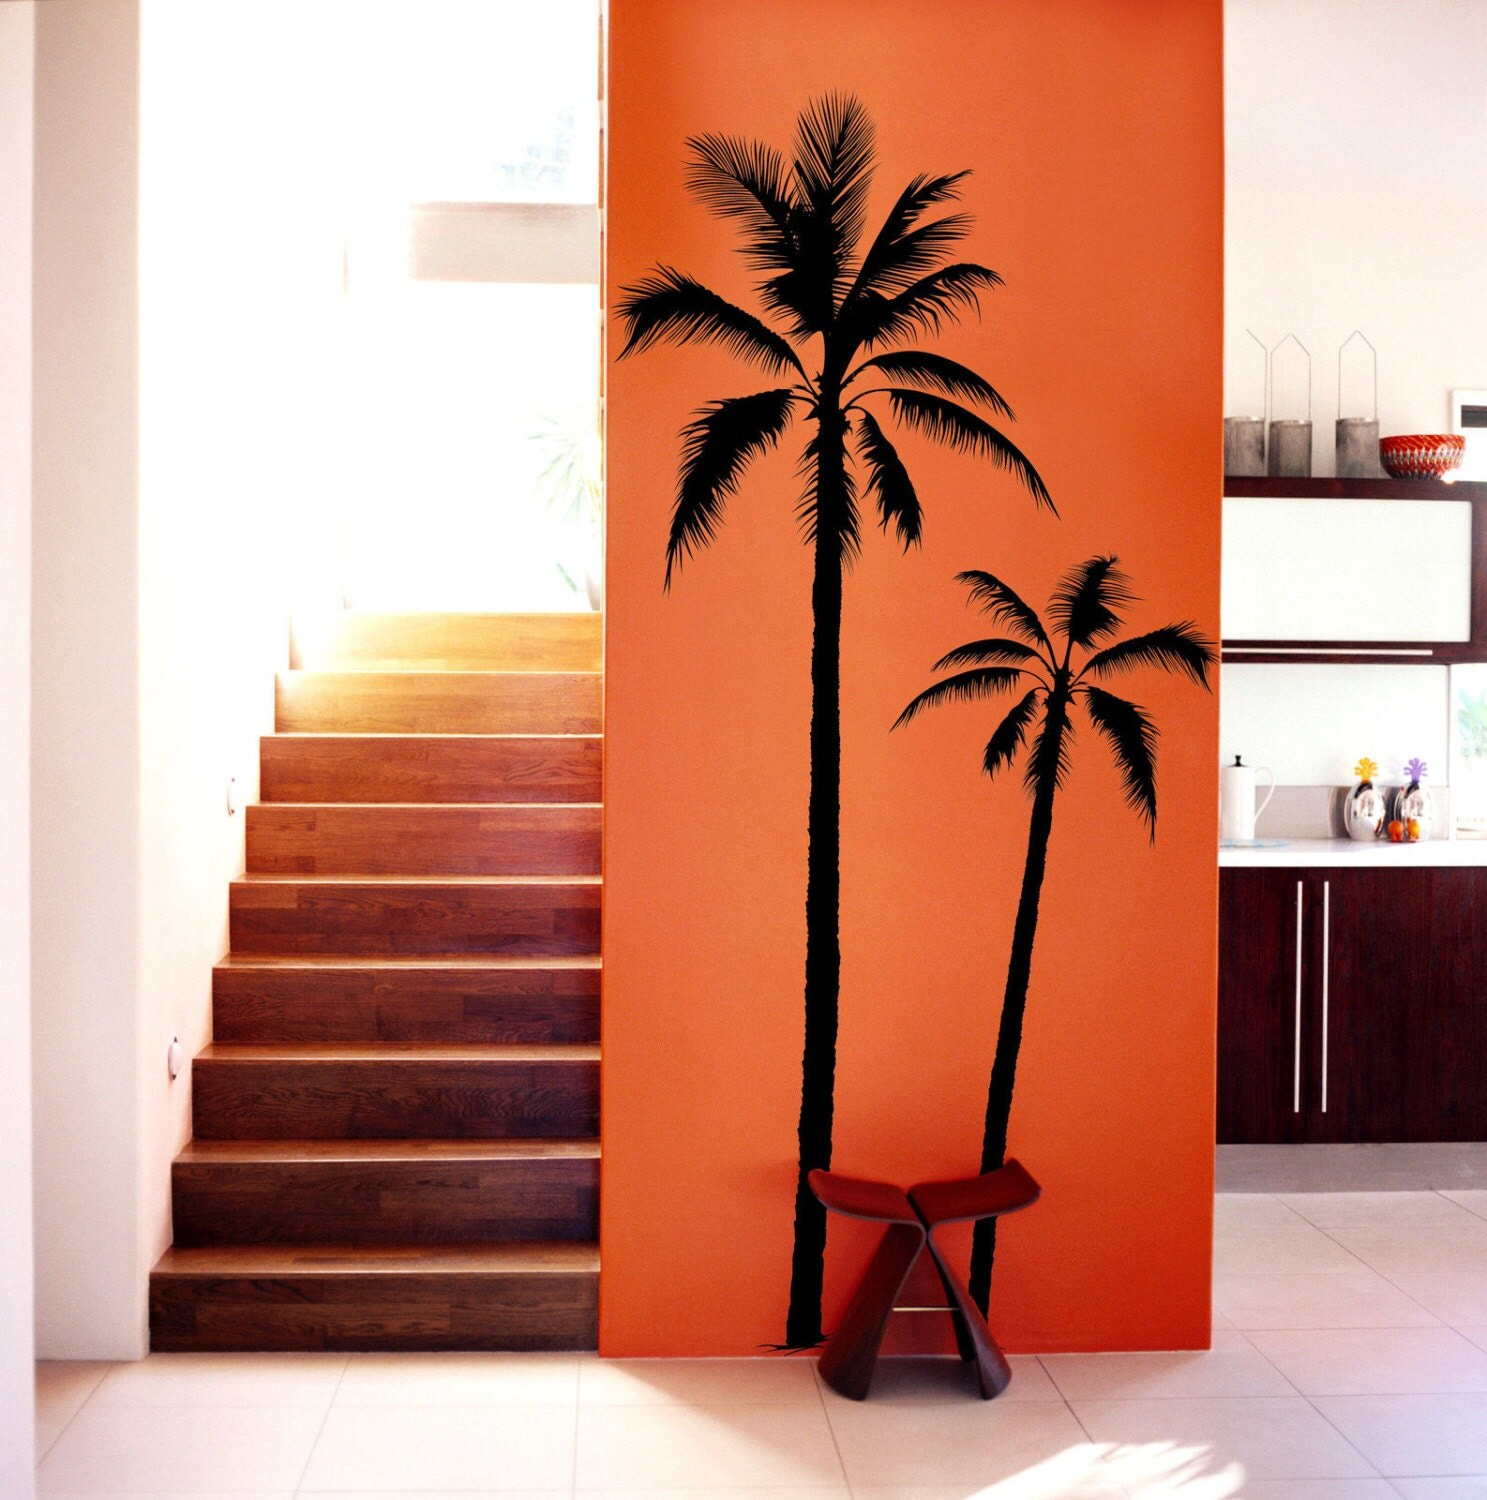 Set of 2 palm tree vinyl decal wall art wall stickers no set of 2 palm tree vinyl decal wall art wall stickers no background large size coconut tree beach oasis south leaf home decor livingroom amipublicfo Image collections